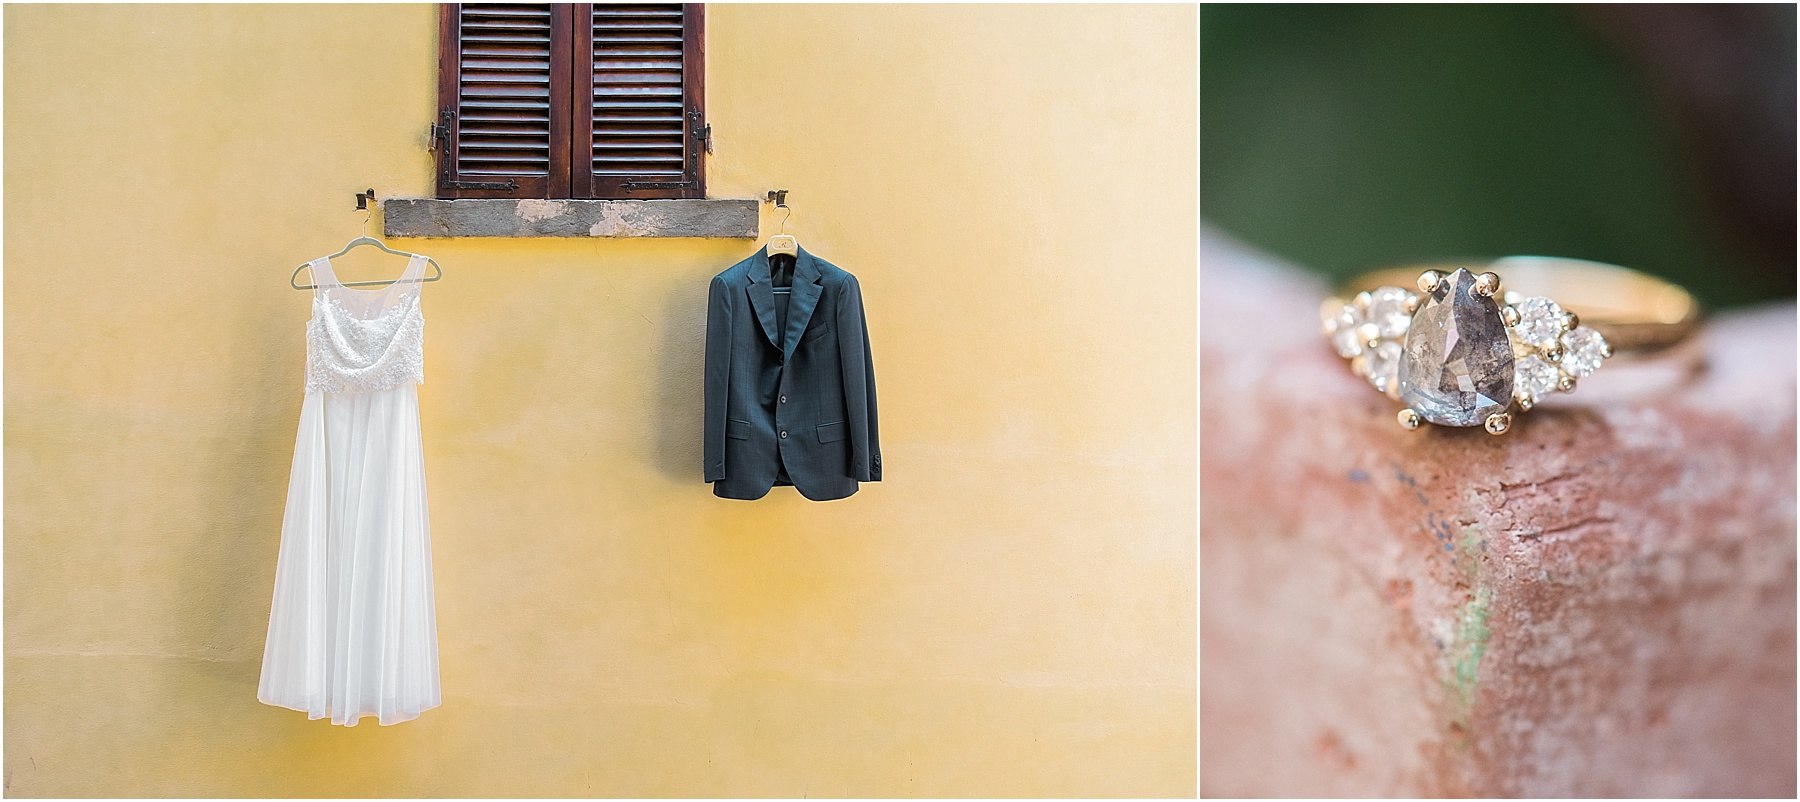 bride and groom details hanging on tuscan window yellow stucco wall and salt and pepper engagement ring on terra cotta pot